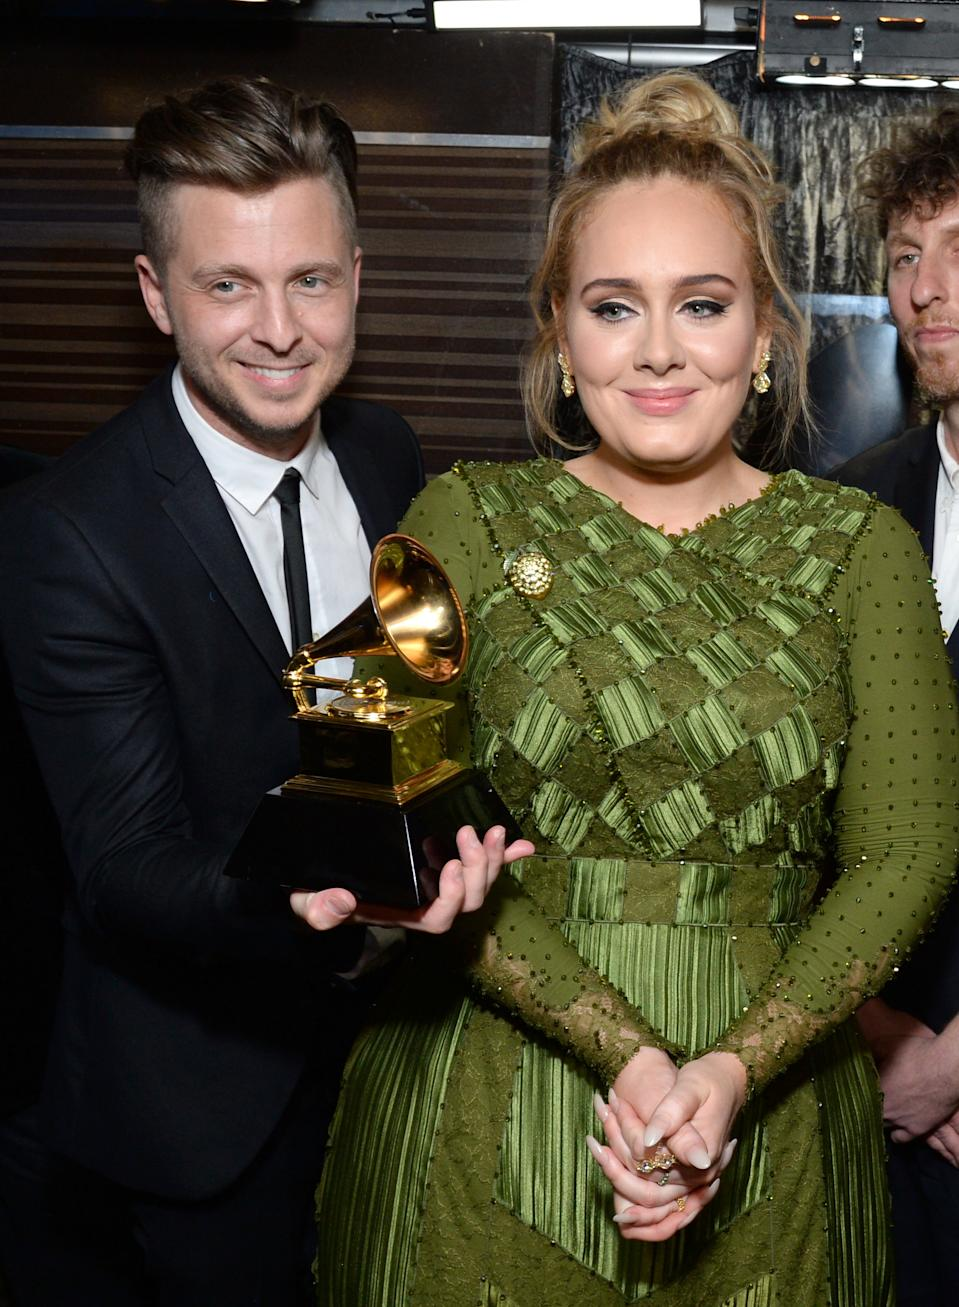 LOS ANGELES, CA - FEBRUARY 12:  Recording artist-producer Ryan Tedder (L) and recording artist Adele, co-recipients of the Album Of The Year award for '25,' pose backstage during the The 59th GRAMMY Awards at STAPLES Center on February 12, 2017 in Los Angeles, California.  (Photo by Michael Kovac/Getty Images for NARAS)